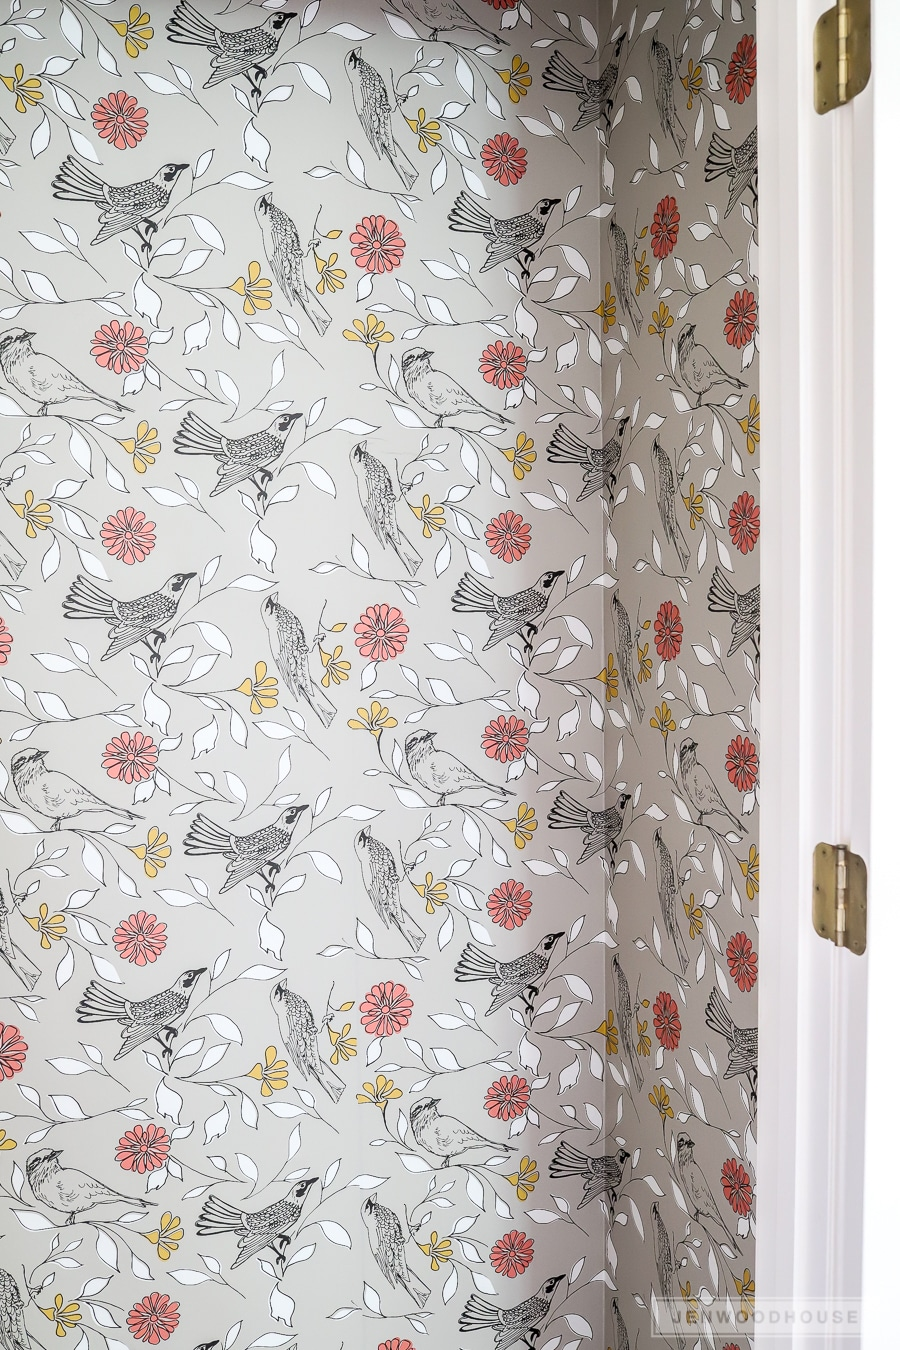 How to install wallpaper in a closet